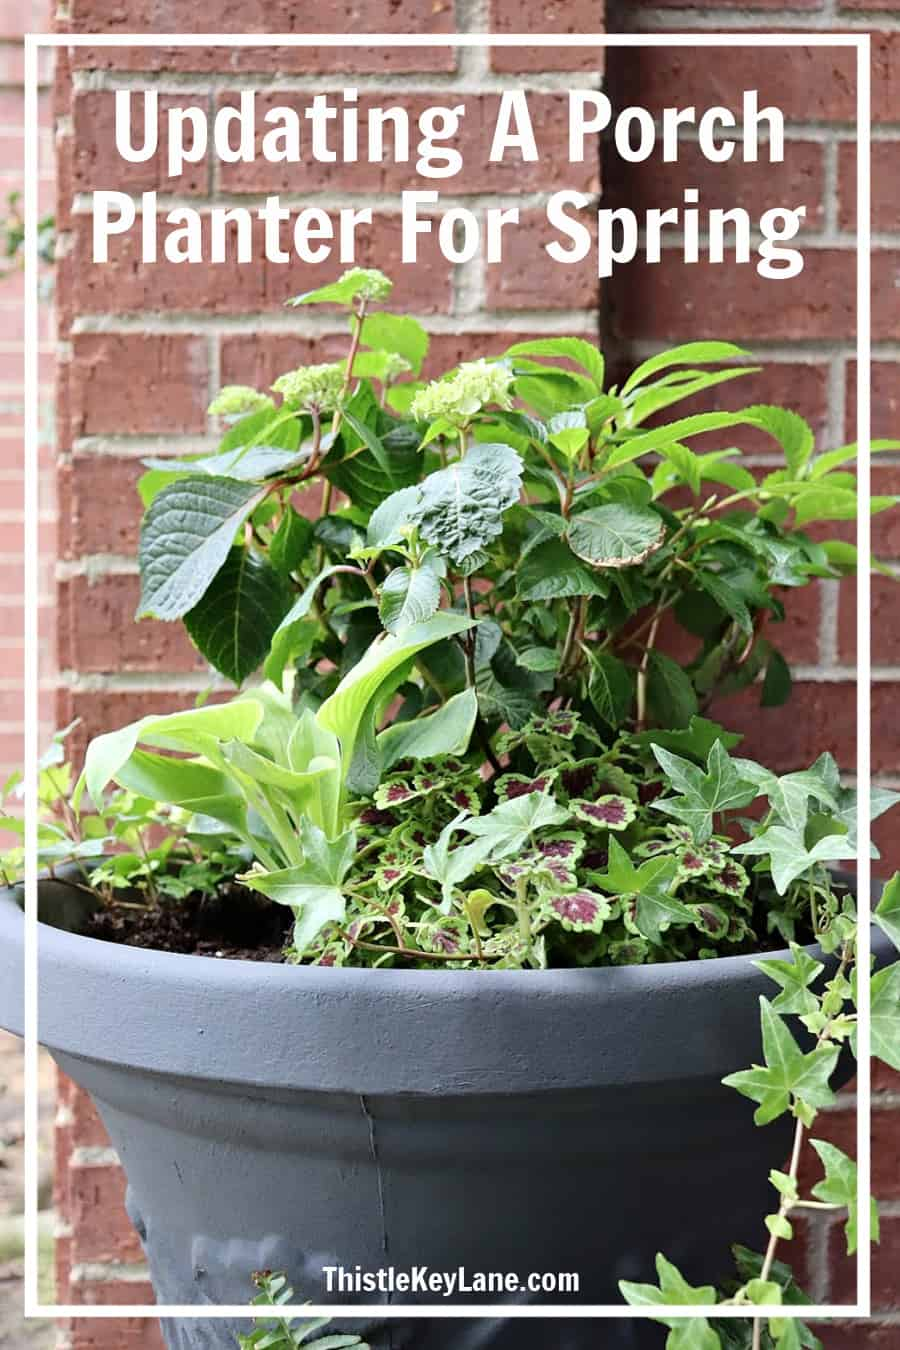 Updating A Porch Planter For Spring